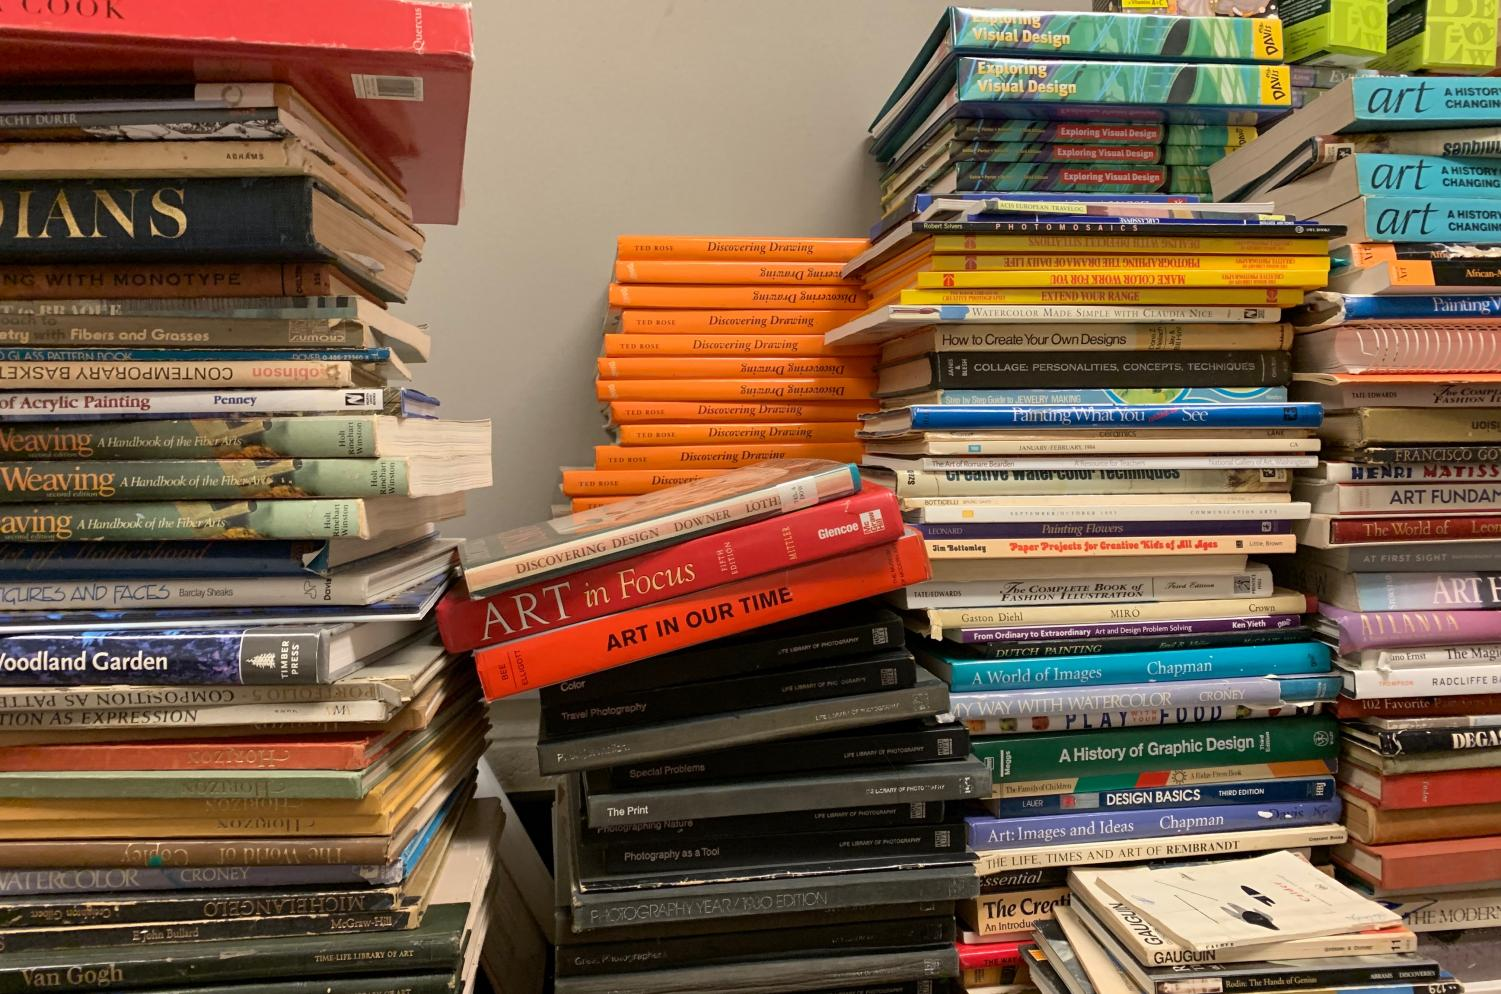 Art history textbooks scattered around the art classroom.